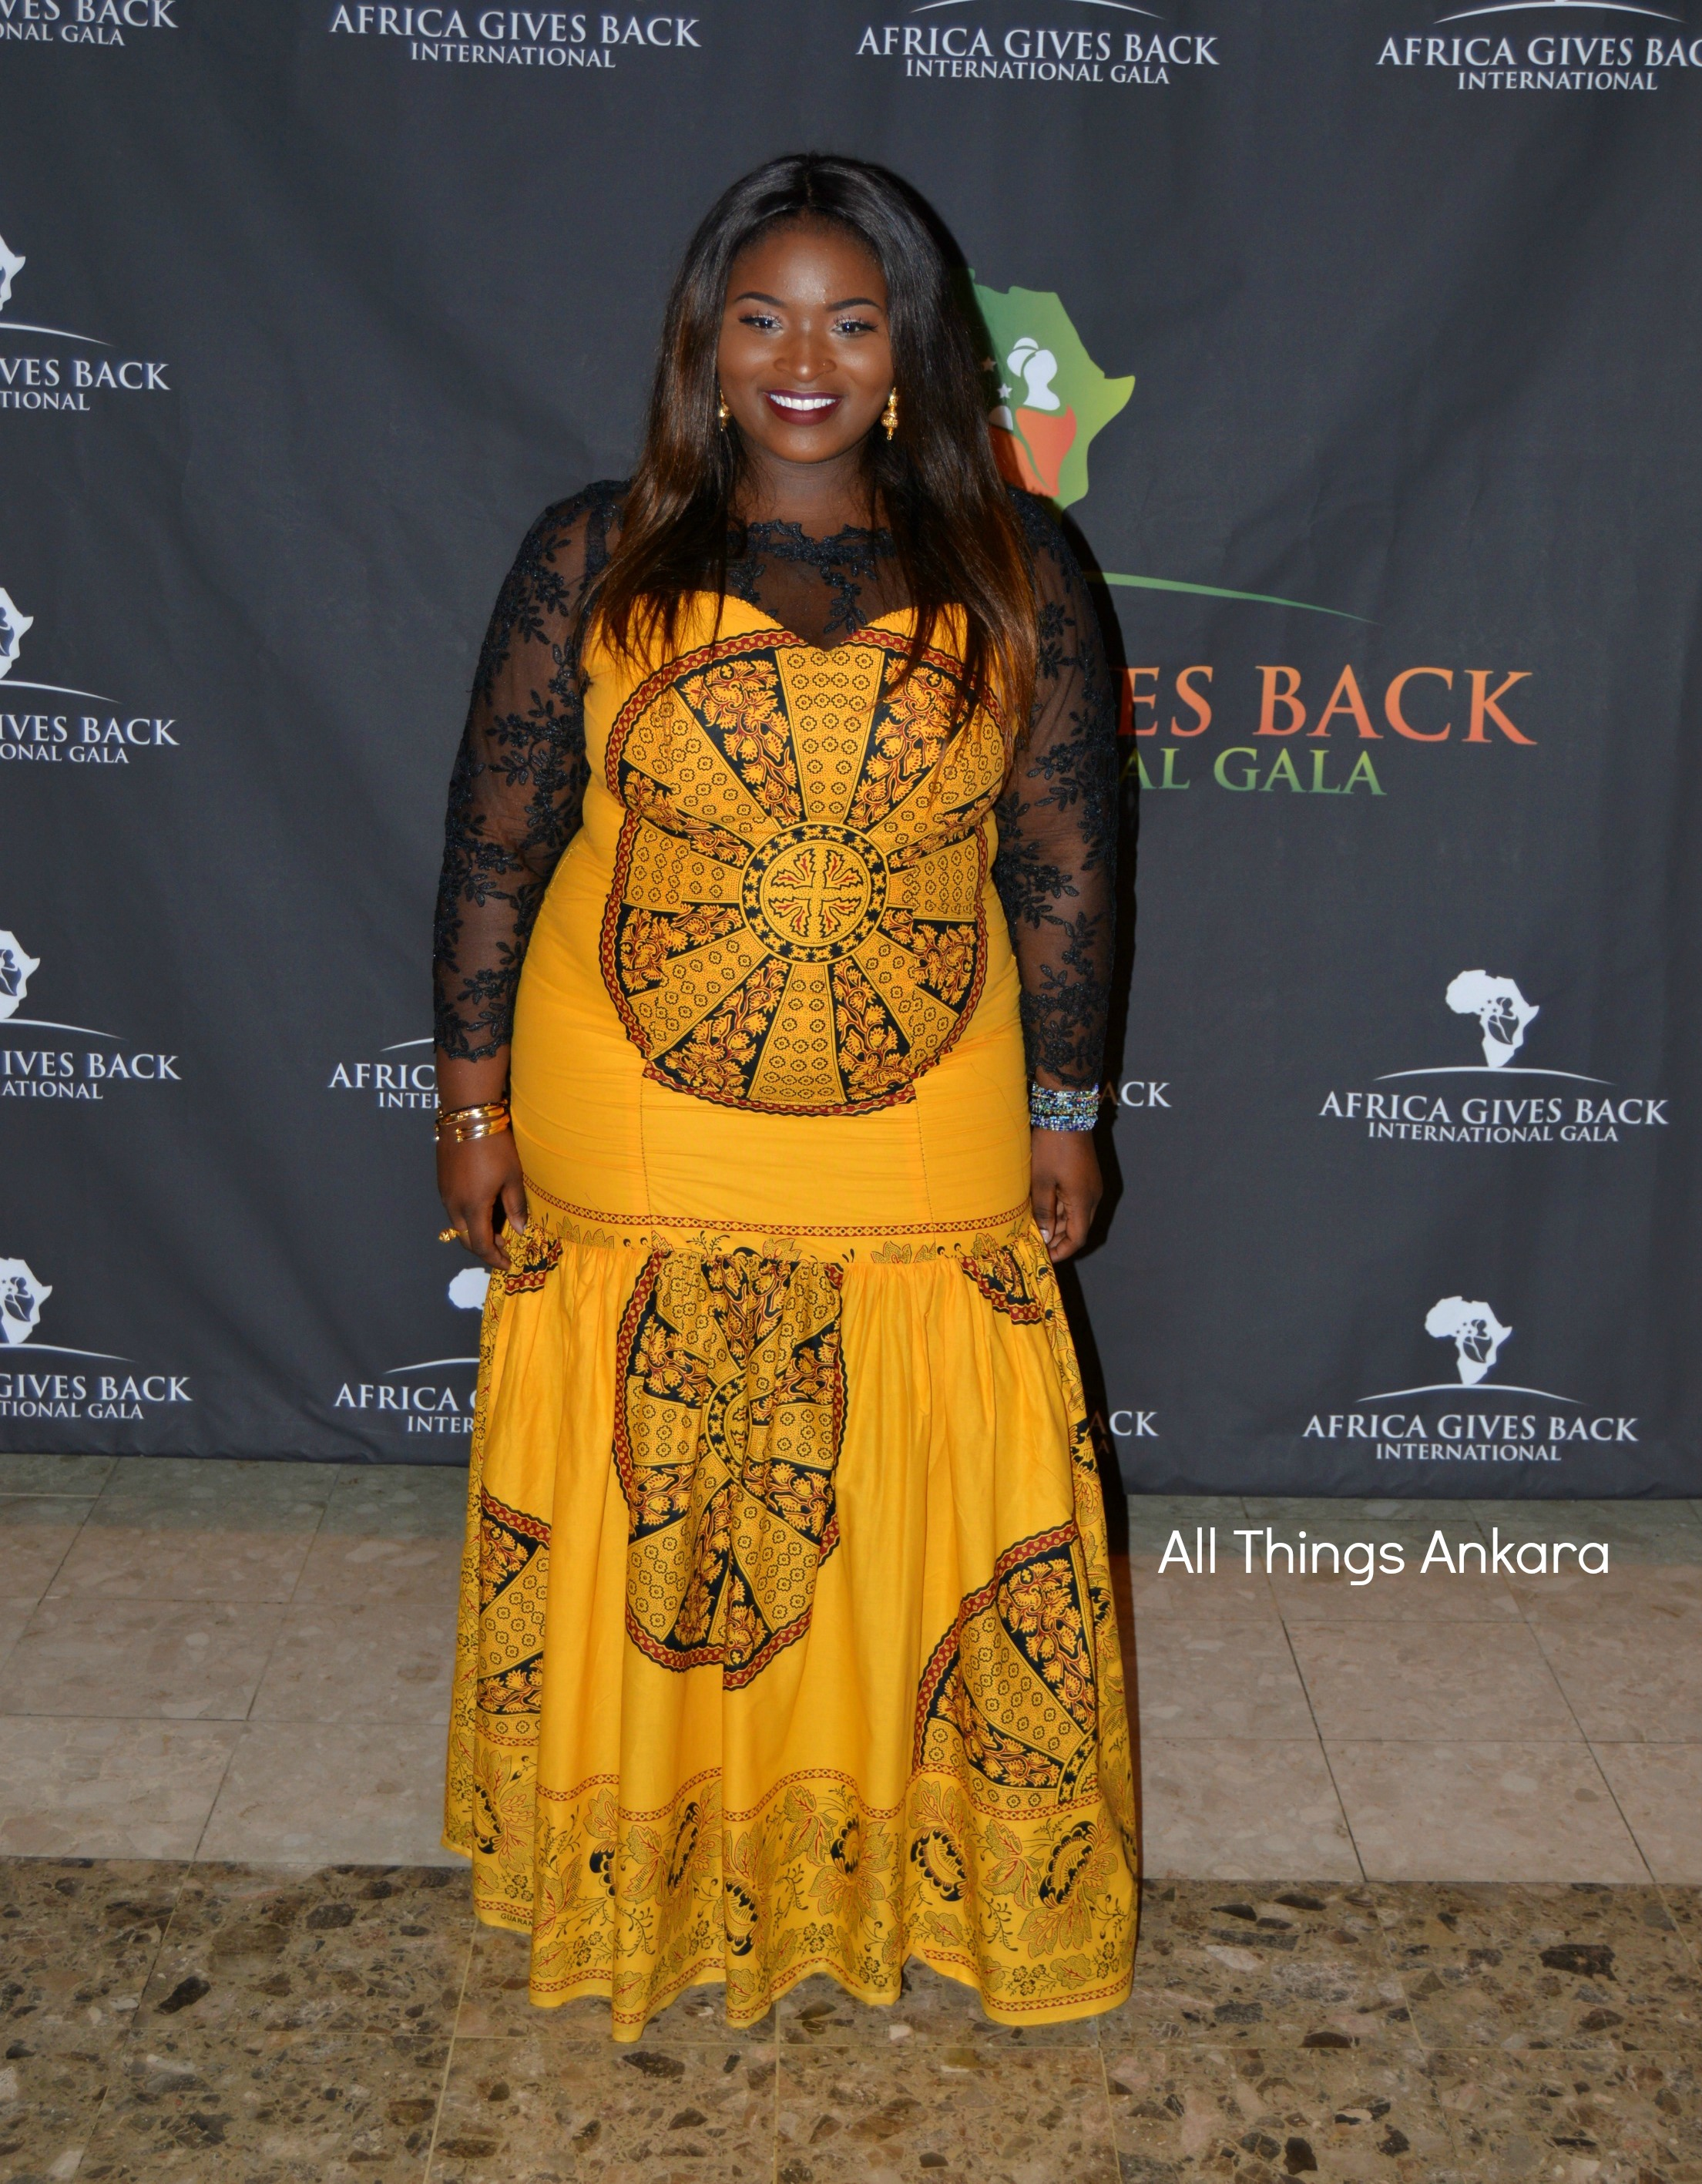 Gala-All Things Ankara's Best Dressed Women at Africa Gives Back International Gala 2016 4